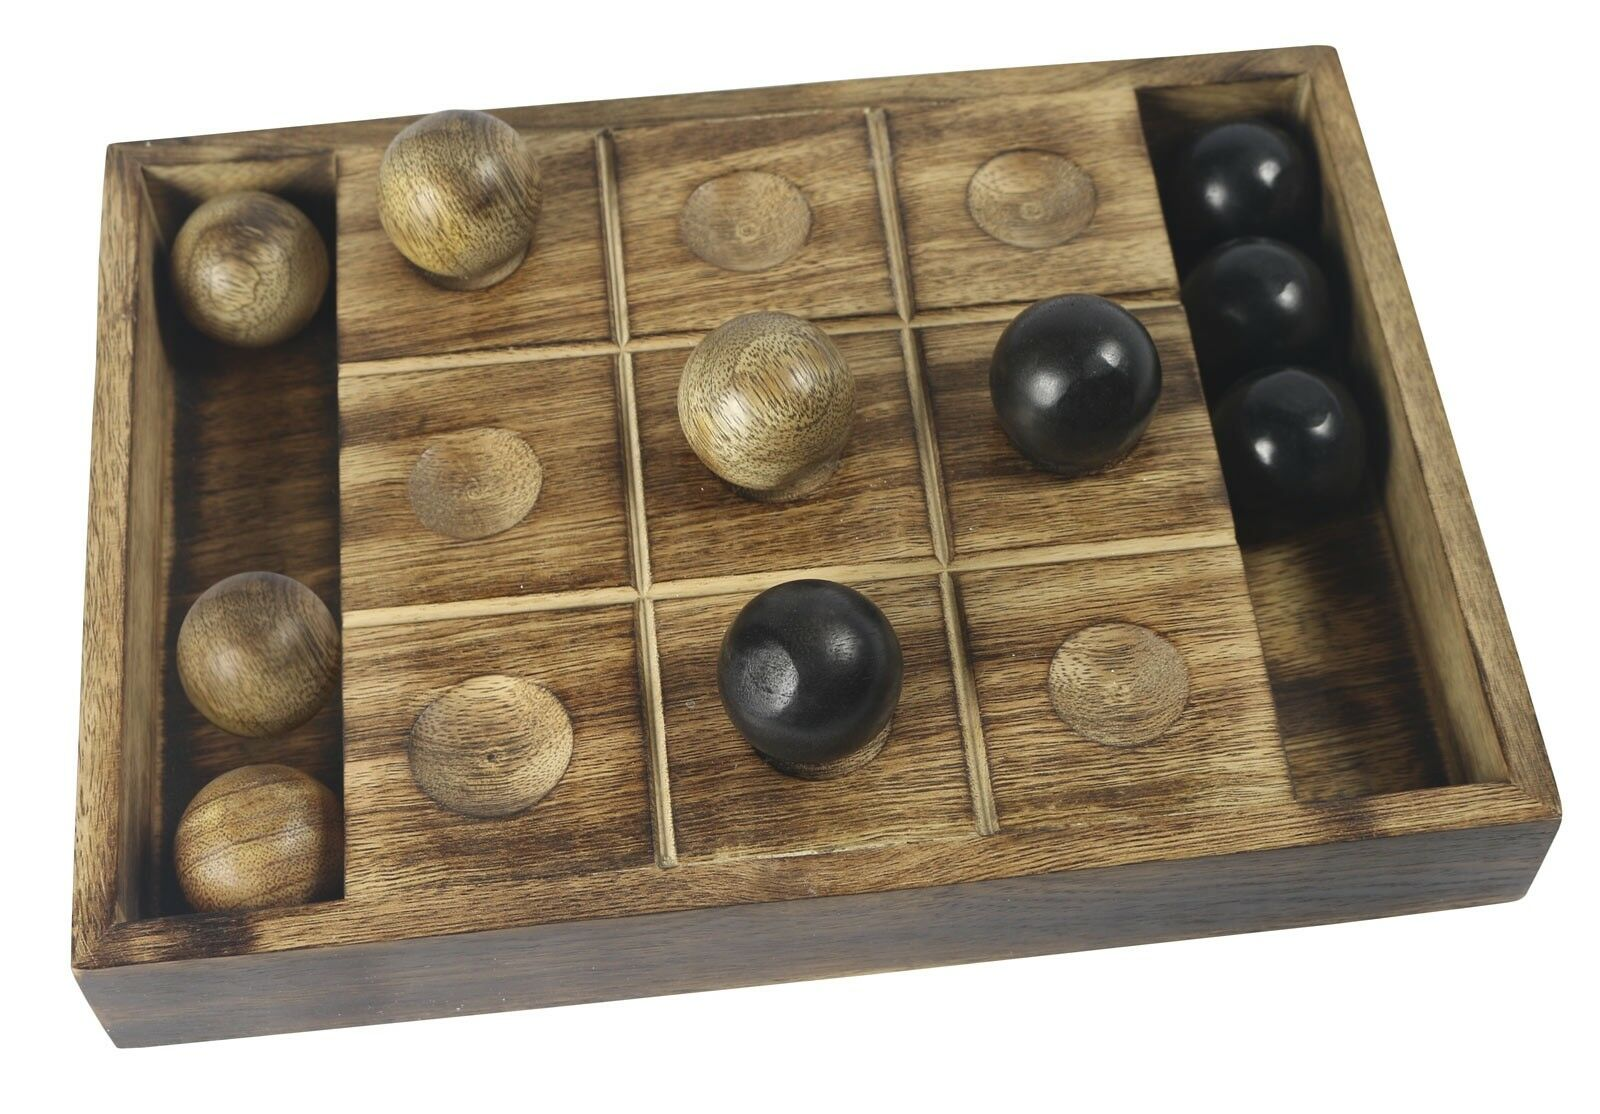 TIC TAC TOE NOUGHTS AND CROSSES MANGO WOOD HAND CRAFTED TABLE TOP GAME